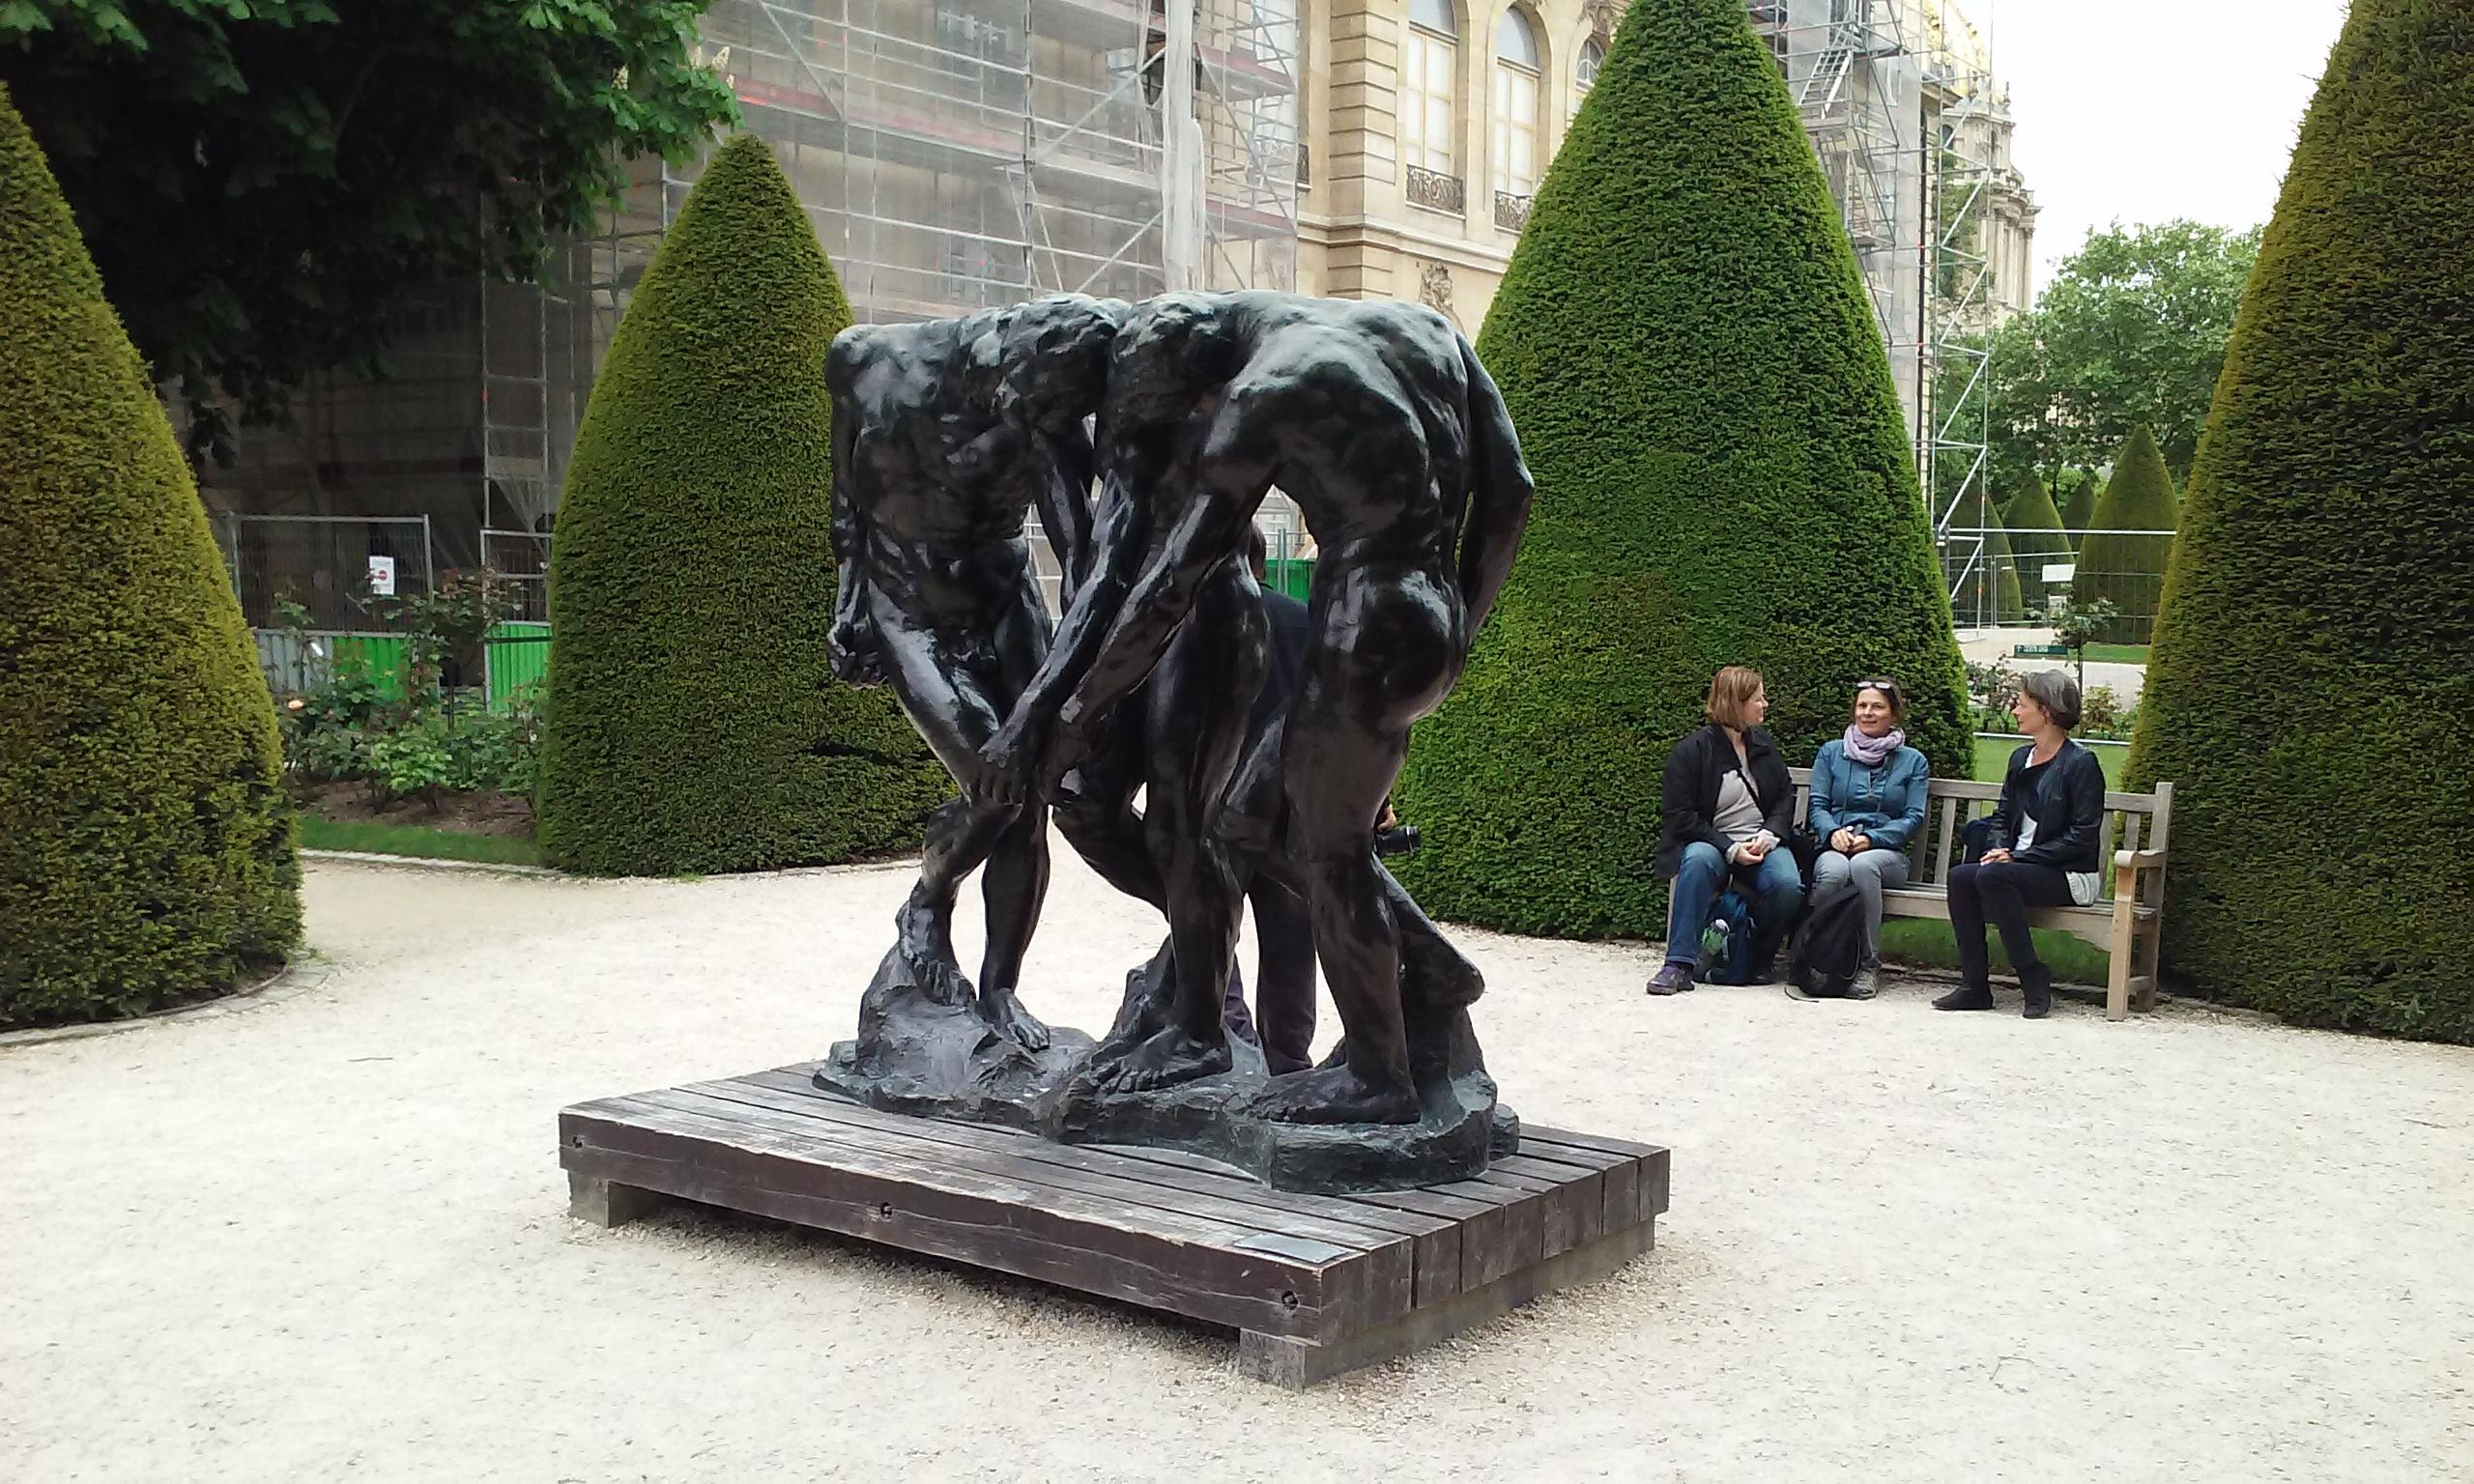 A statue showing shared agony at the Musee Rodin.  The museum has several benches to enjoy